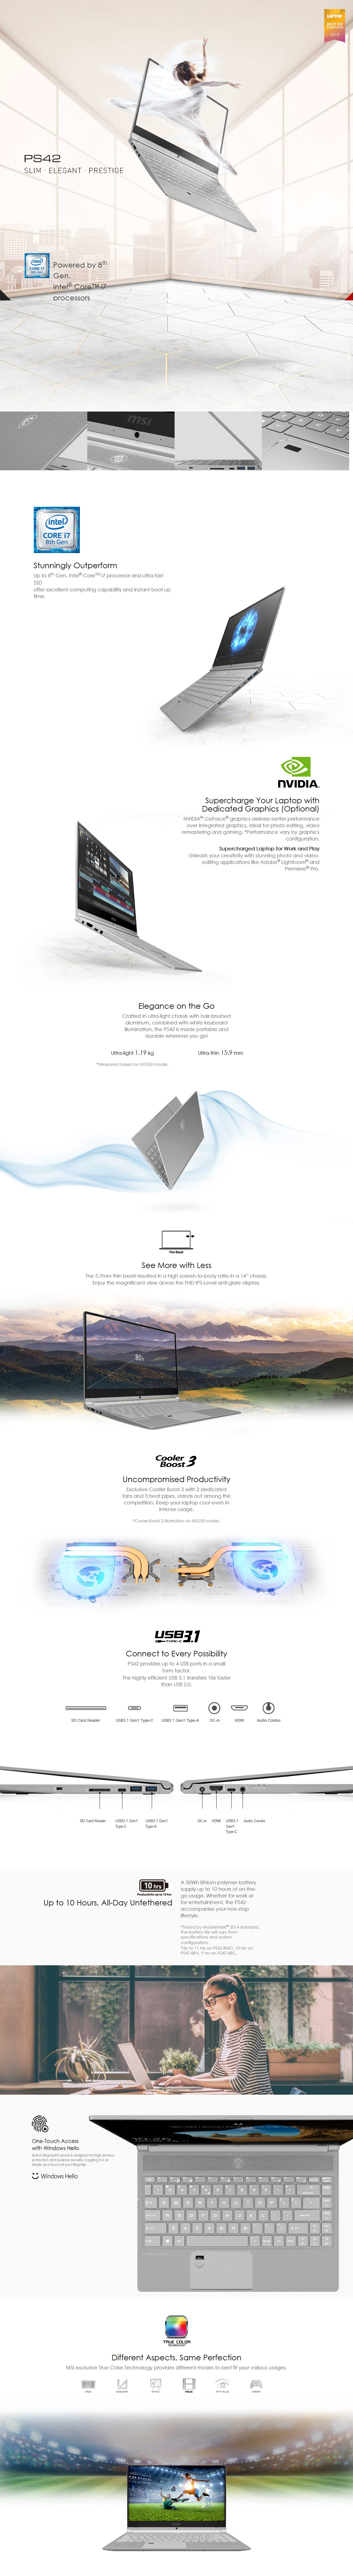 """A large marketing image providing additional information about the product MSI PS42 8MO Modern 14"""" i5 256GB Windows 10 Home Notebook - Additional alt info not provided"""